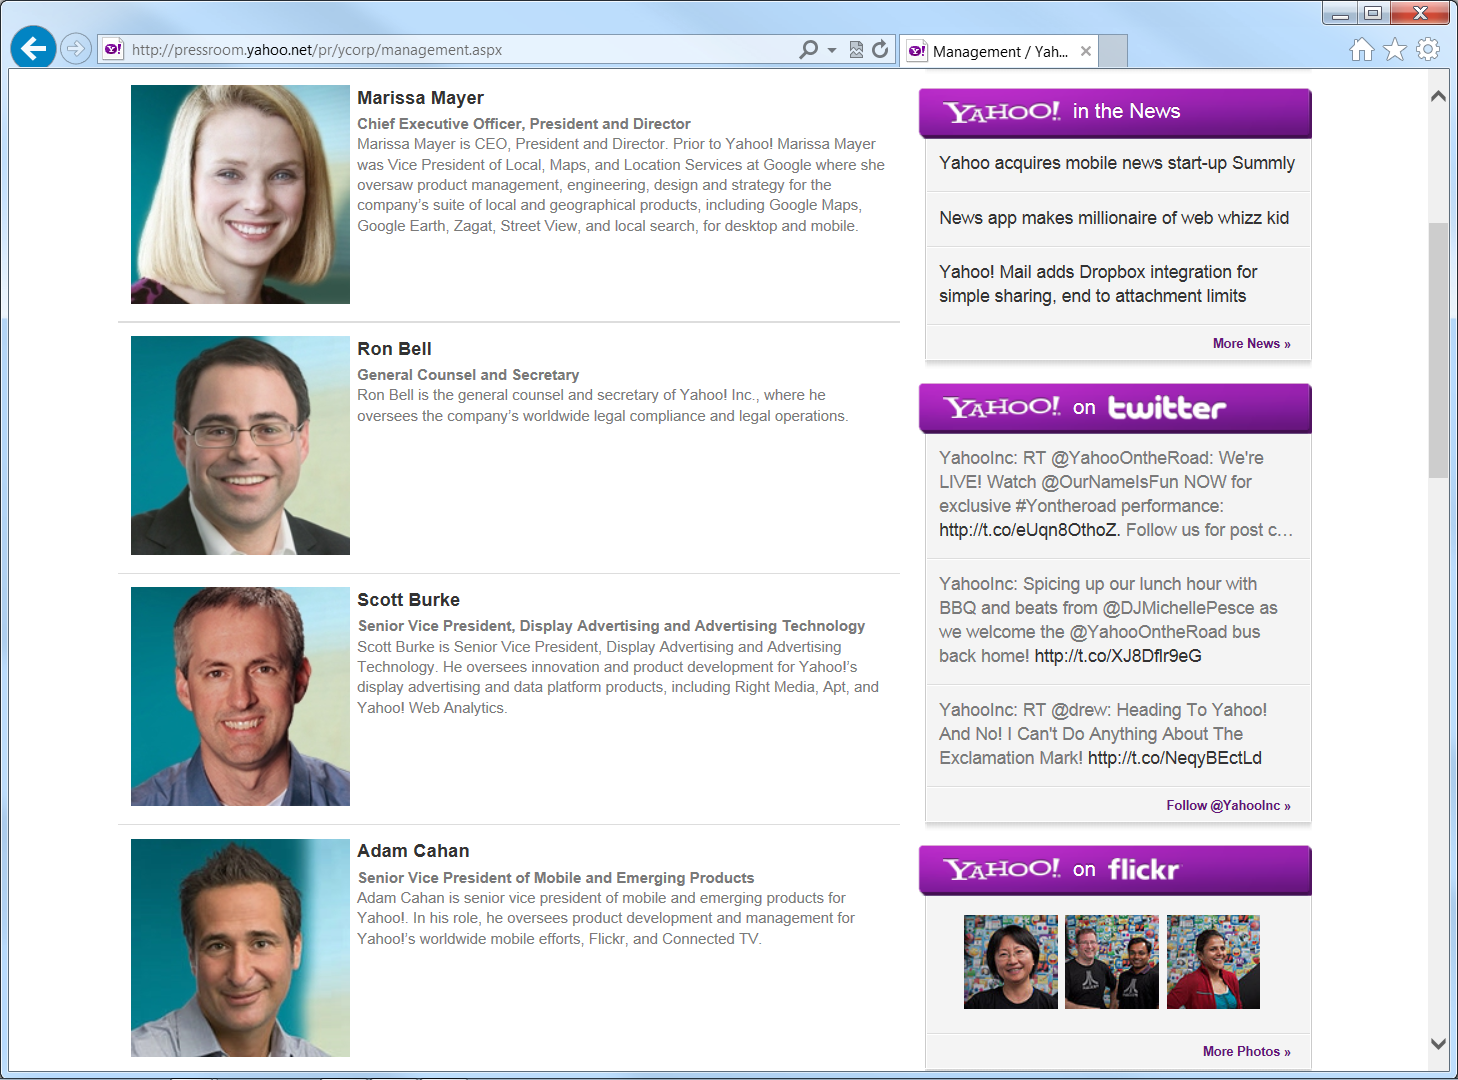 Yahoo Management